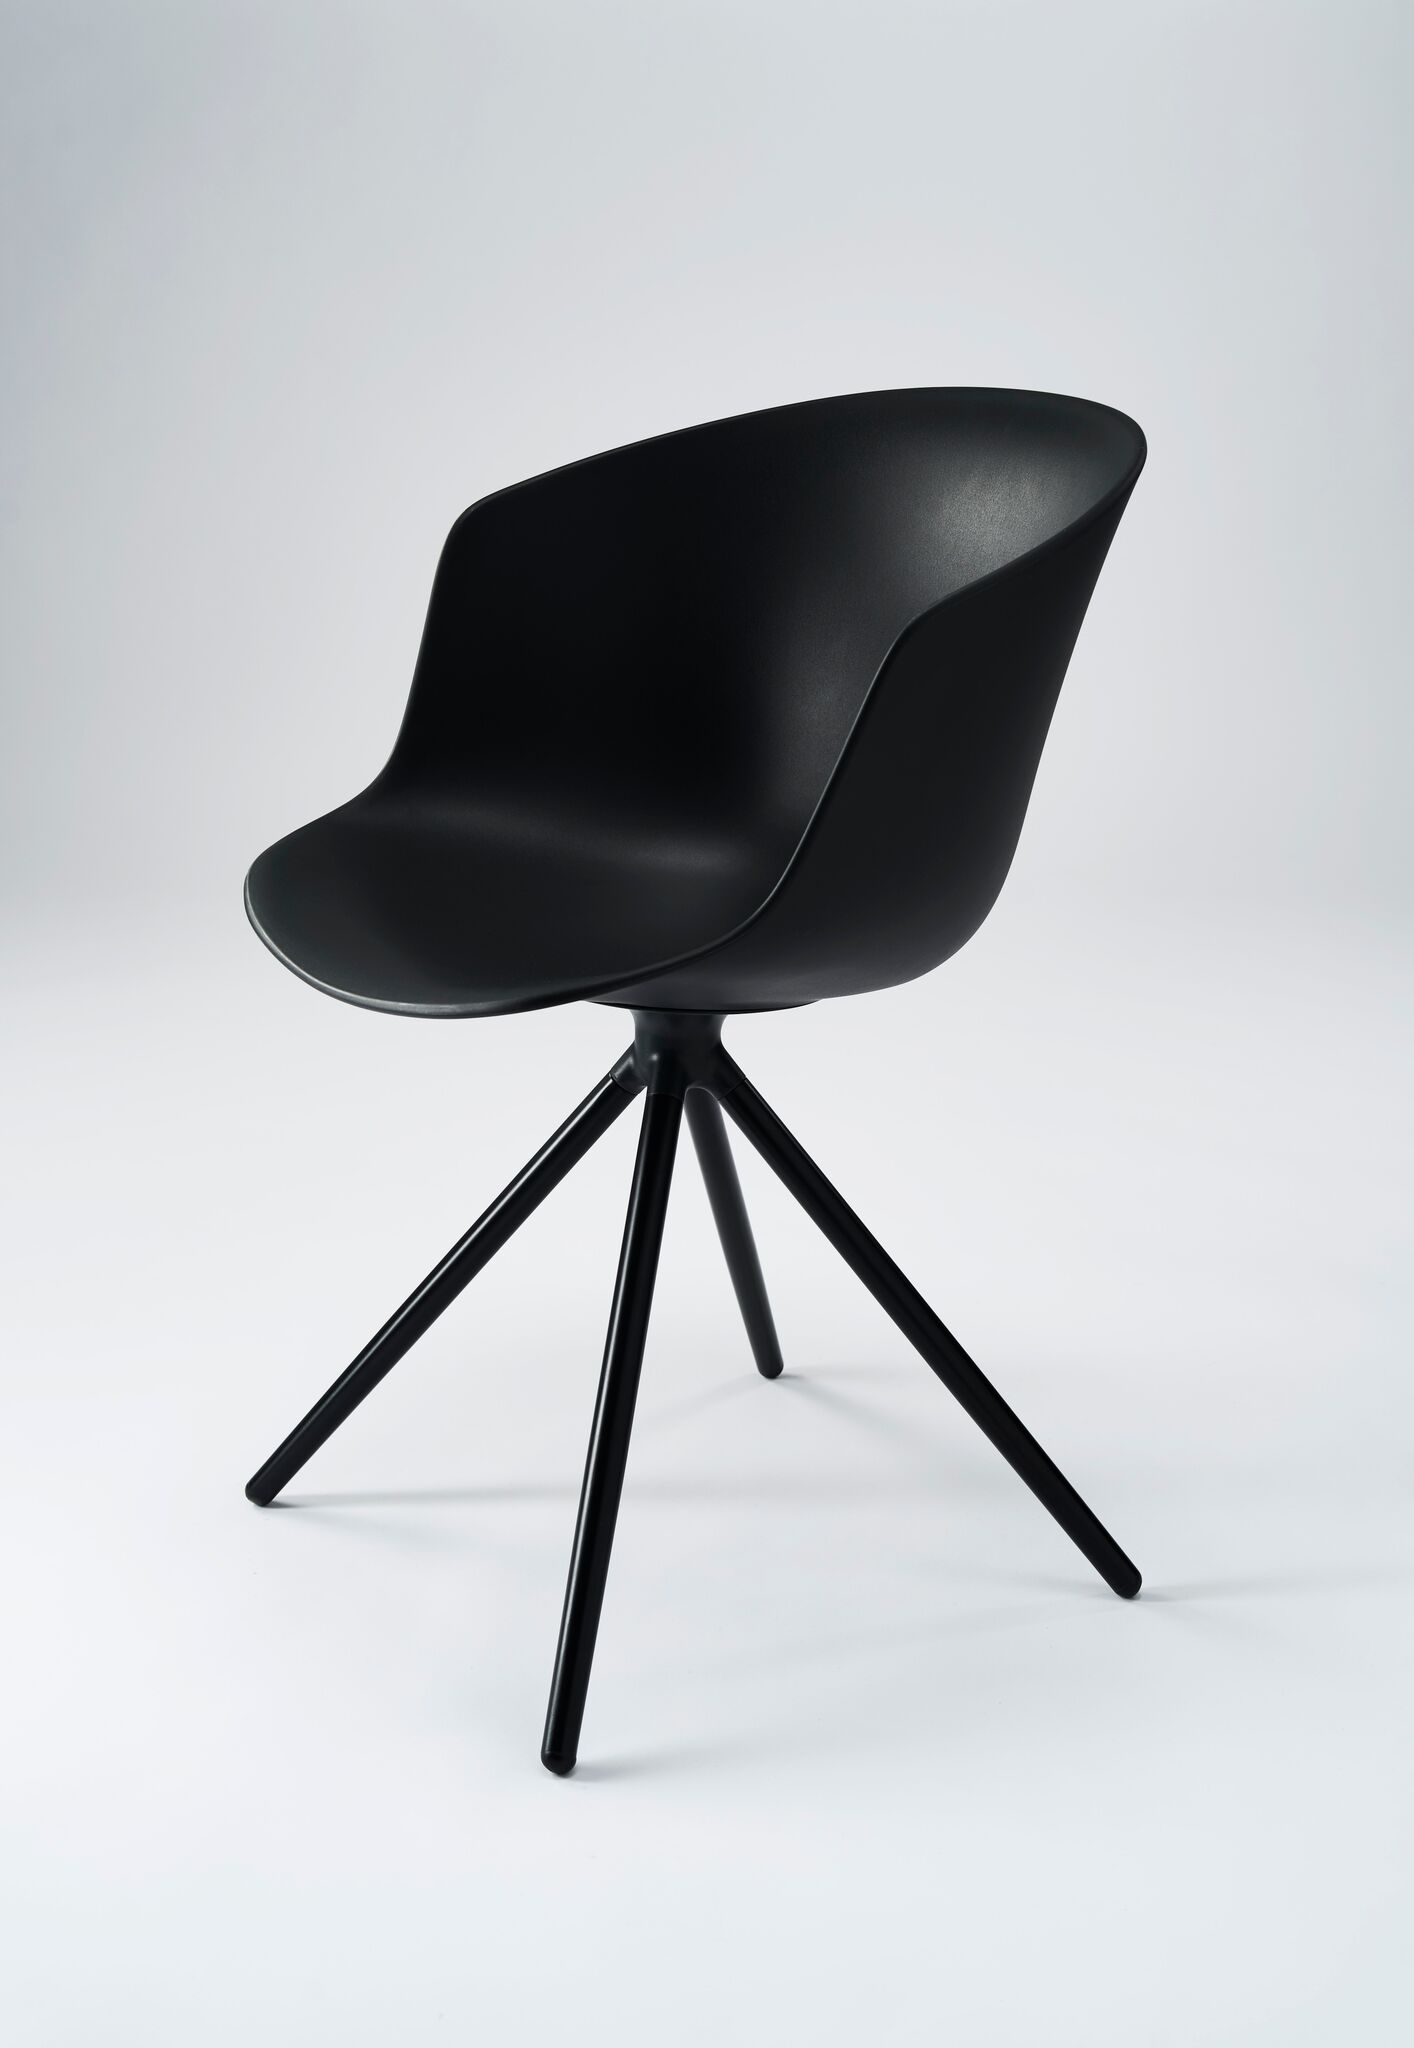 Surprising Mono Chair Design By 365 North Voor Won Pdpeps Interior Chair Design Pdpepsorg